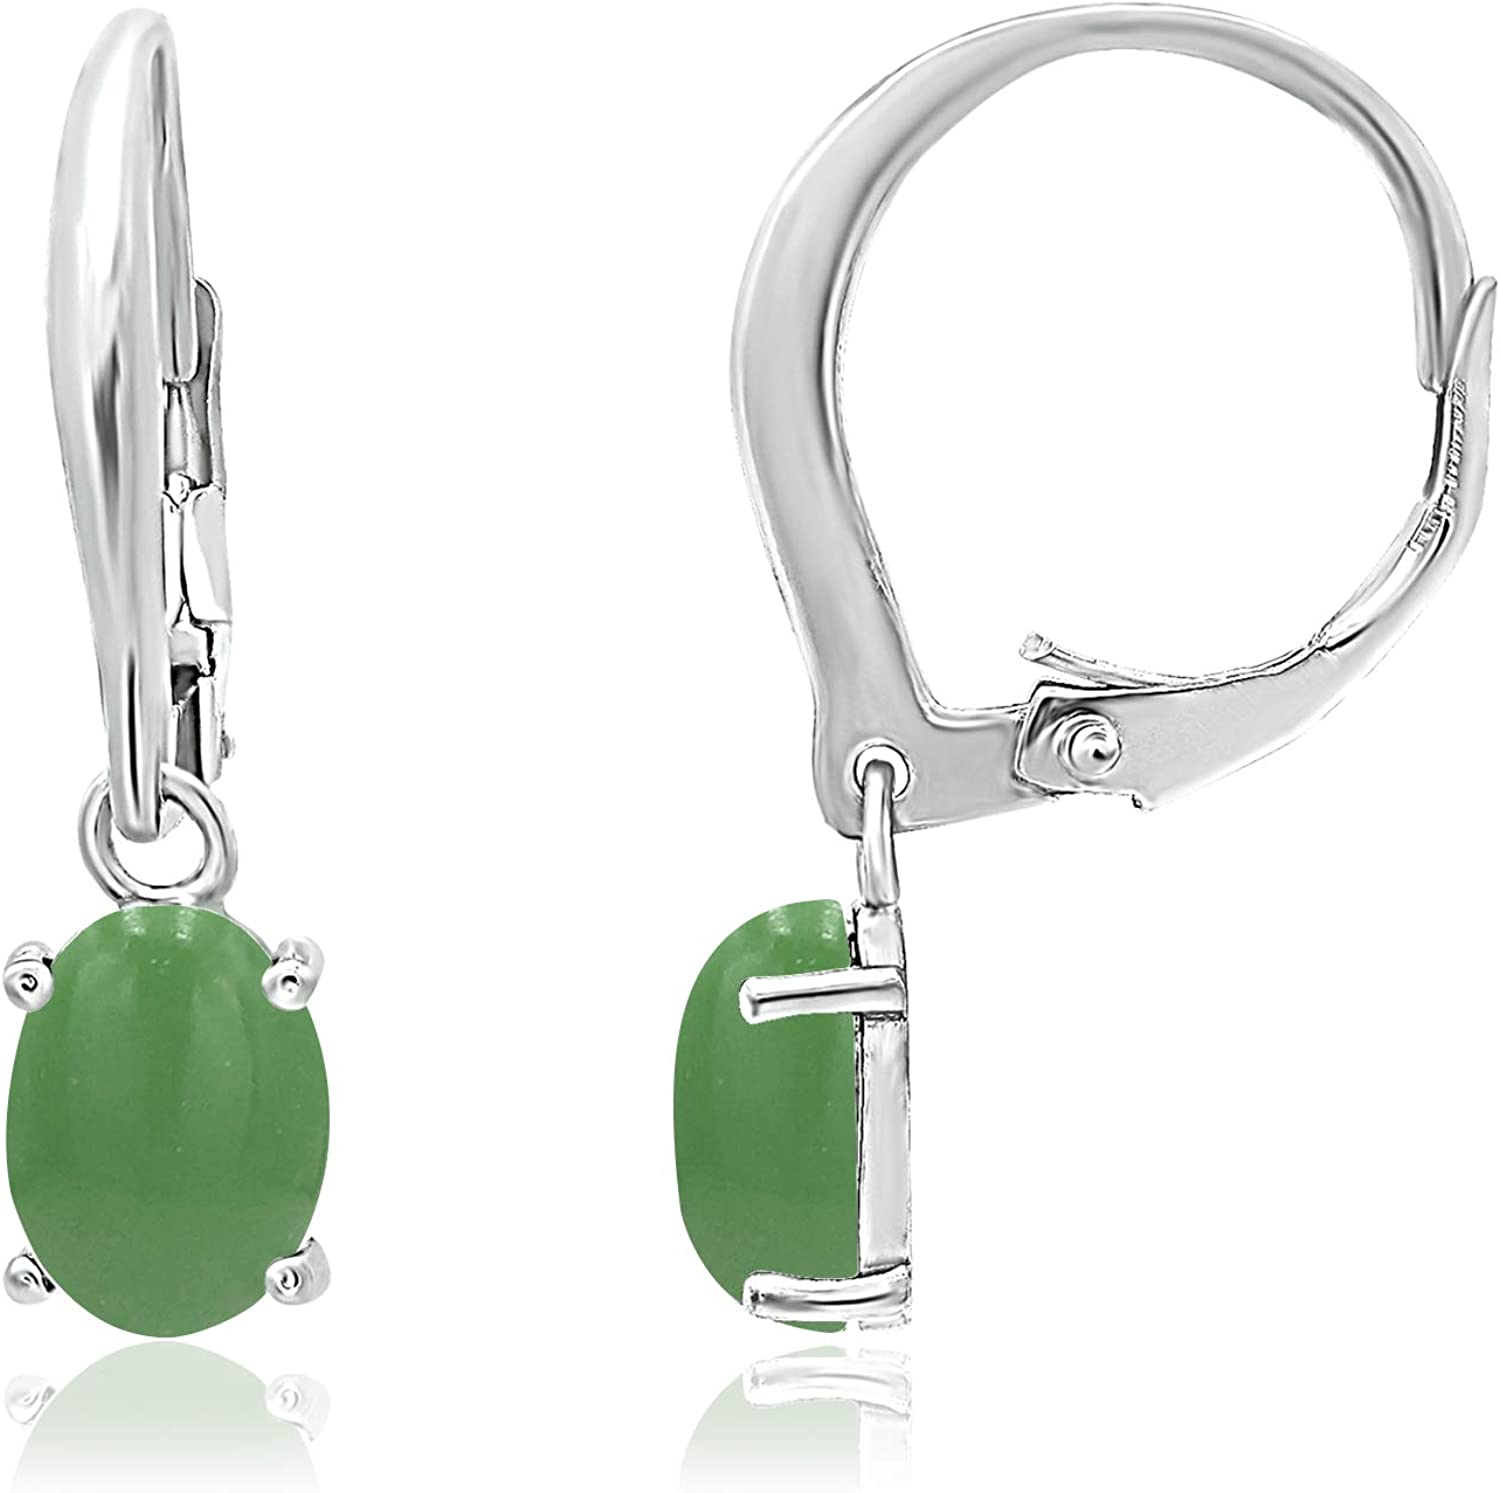 925 Sterling Silver 8x6mm Oval Shape Genuine or Simulated Gemstone Leverback Drop Dangle Earrings (Prong Setting)